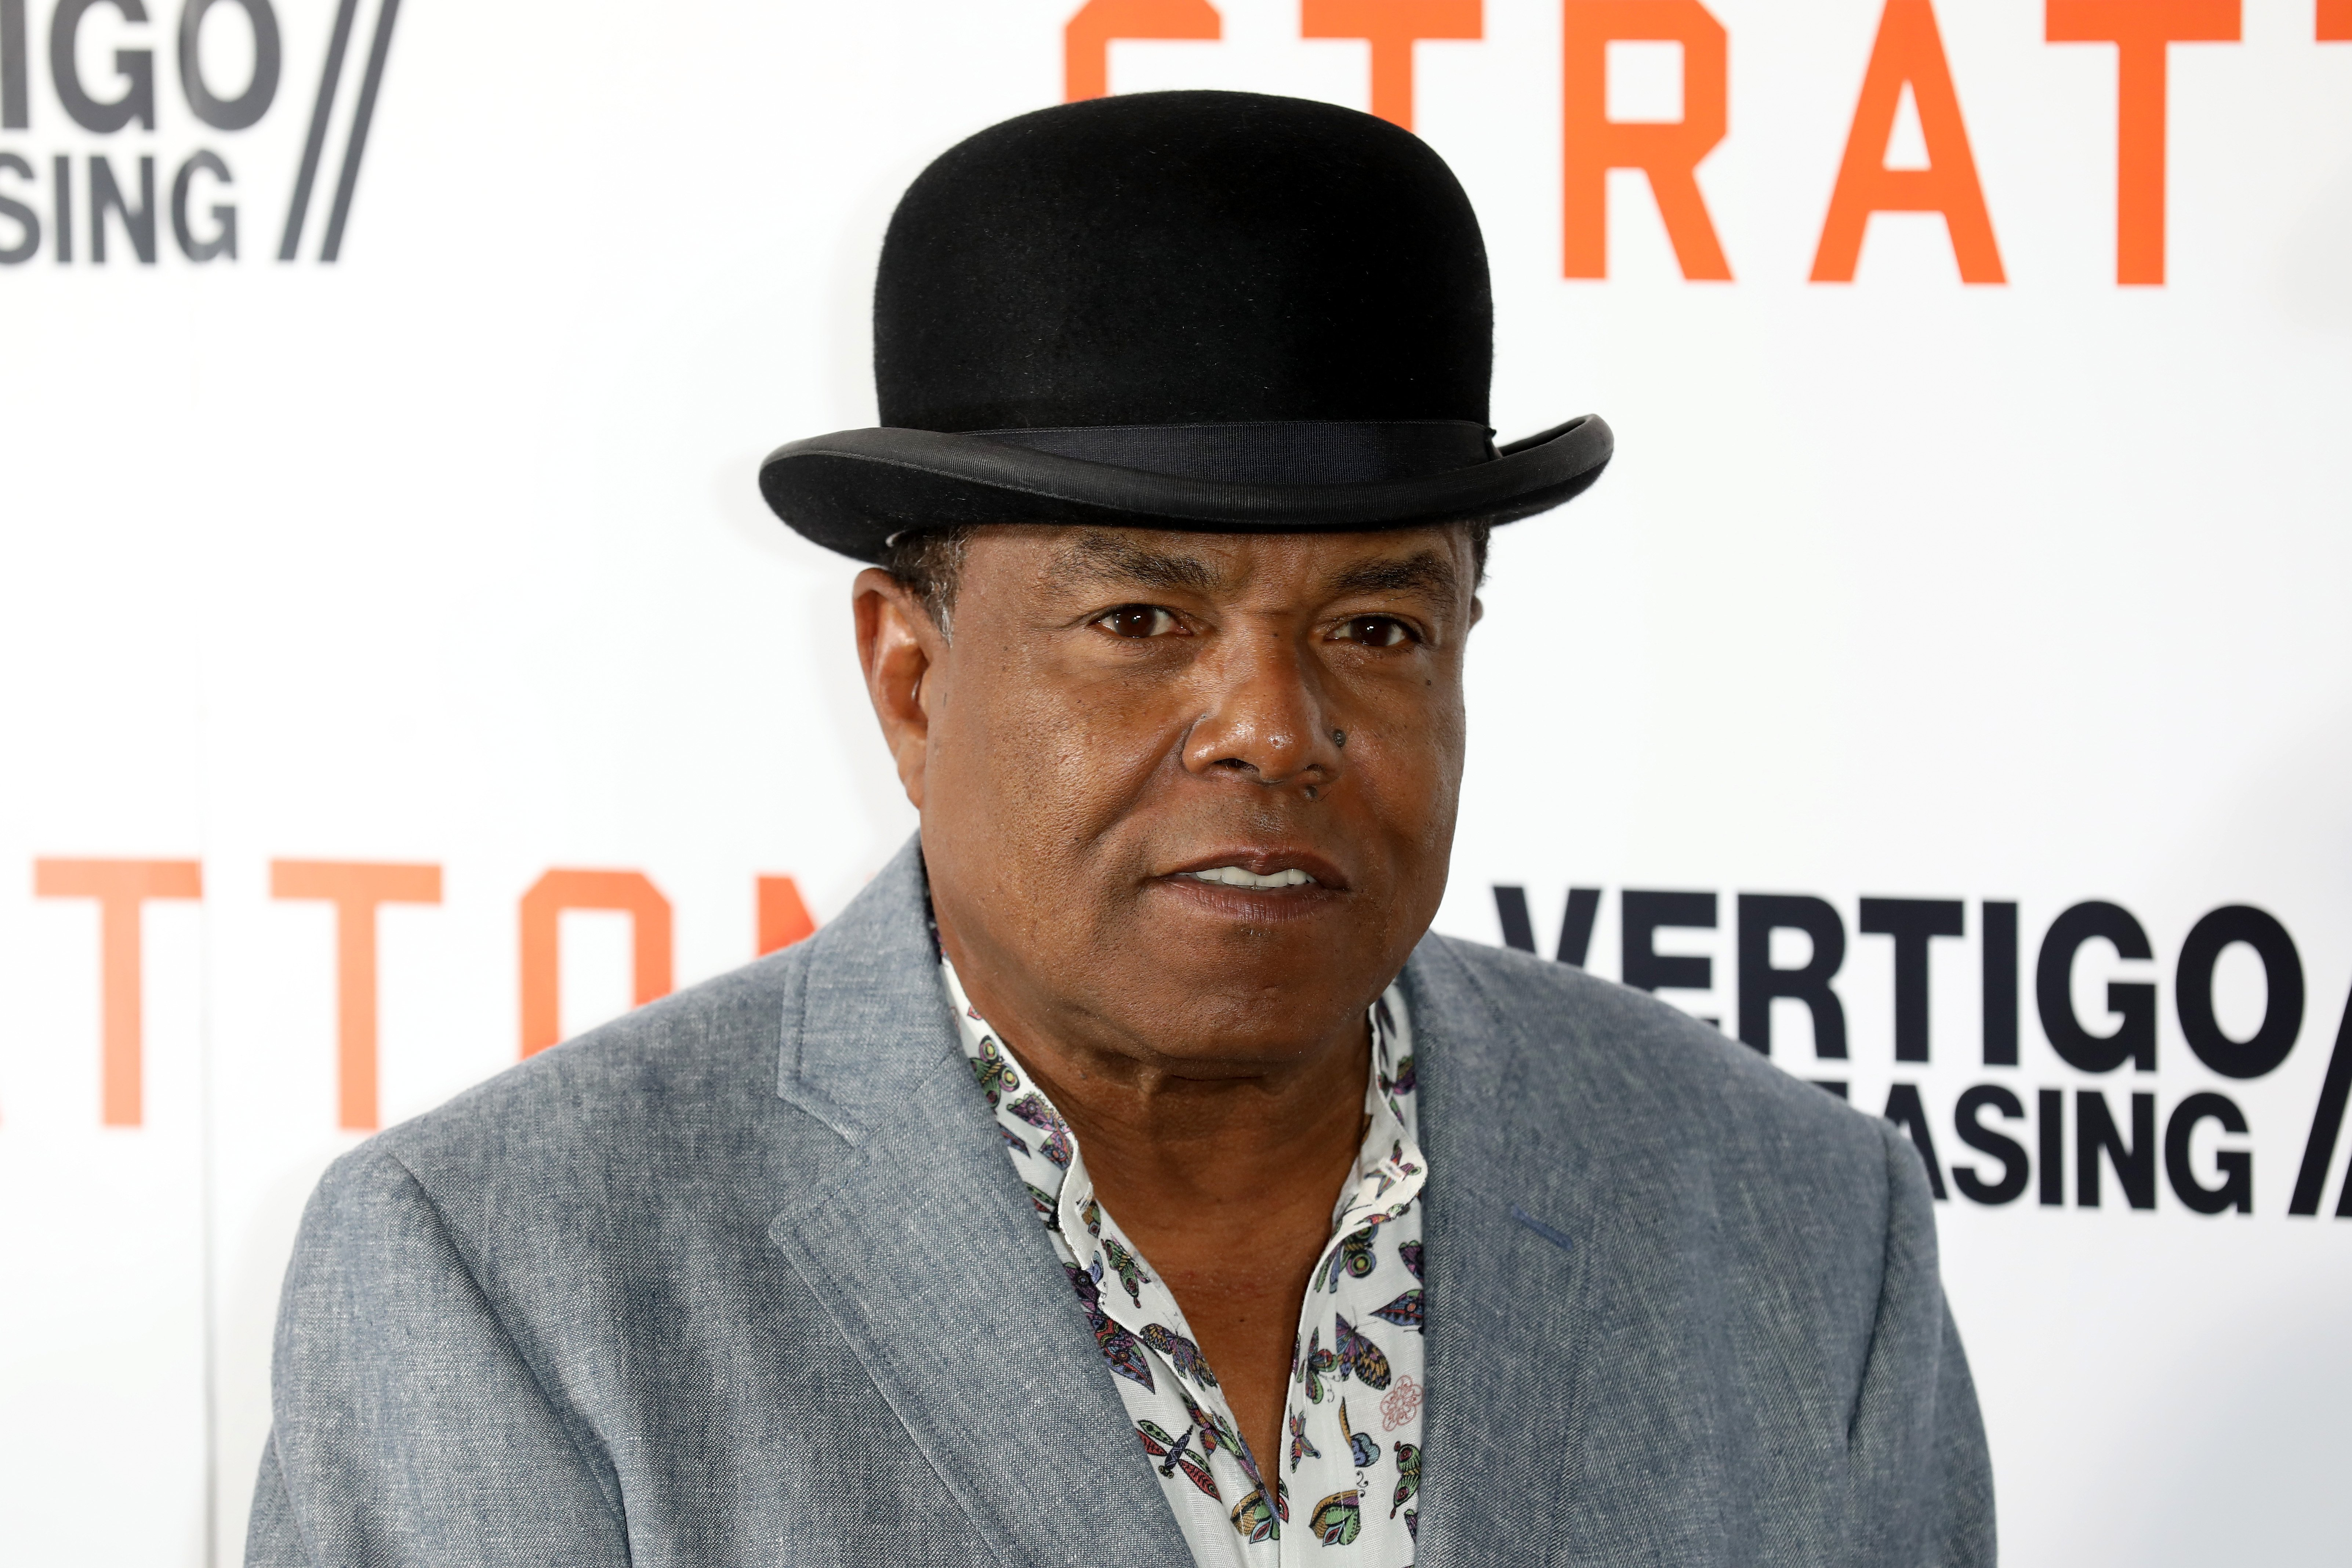 Tito Jackson, Michael Jackson's older brother attending a premiere in London in 2017. | Photo: Getty Images